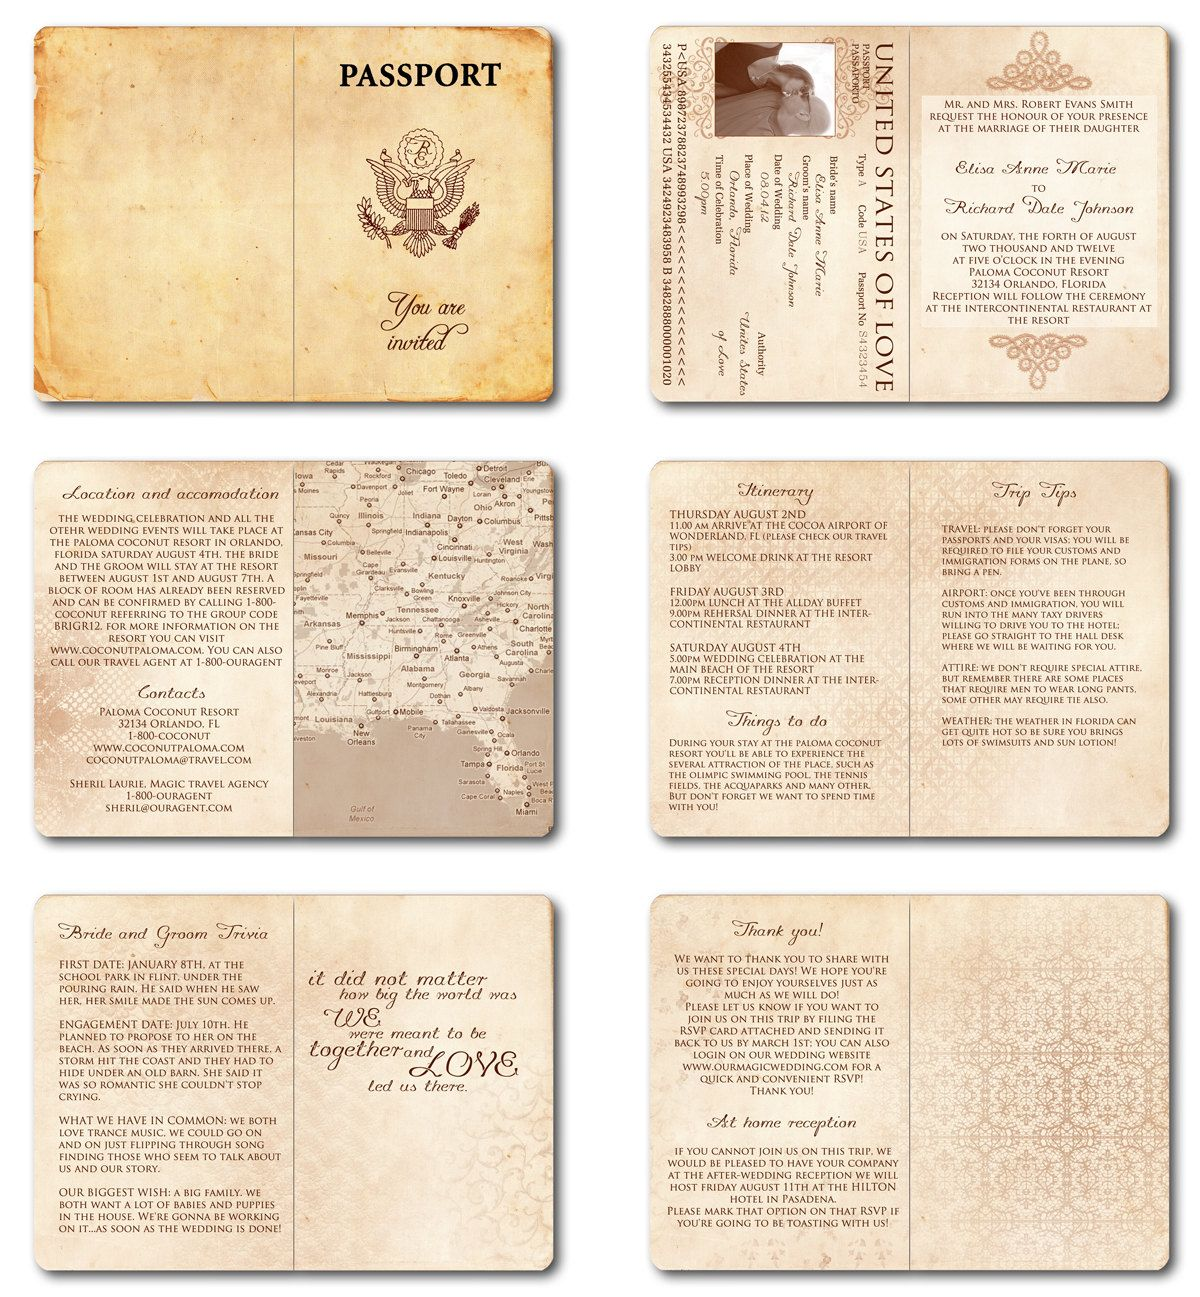 Wedding Invitation Passport Printable Template - Vintage Passport 6 ...